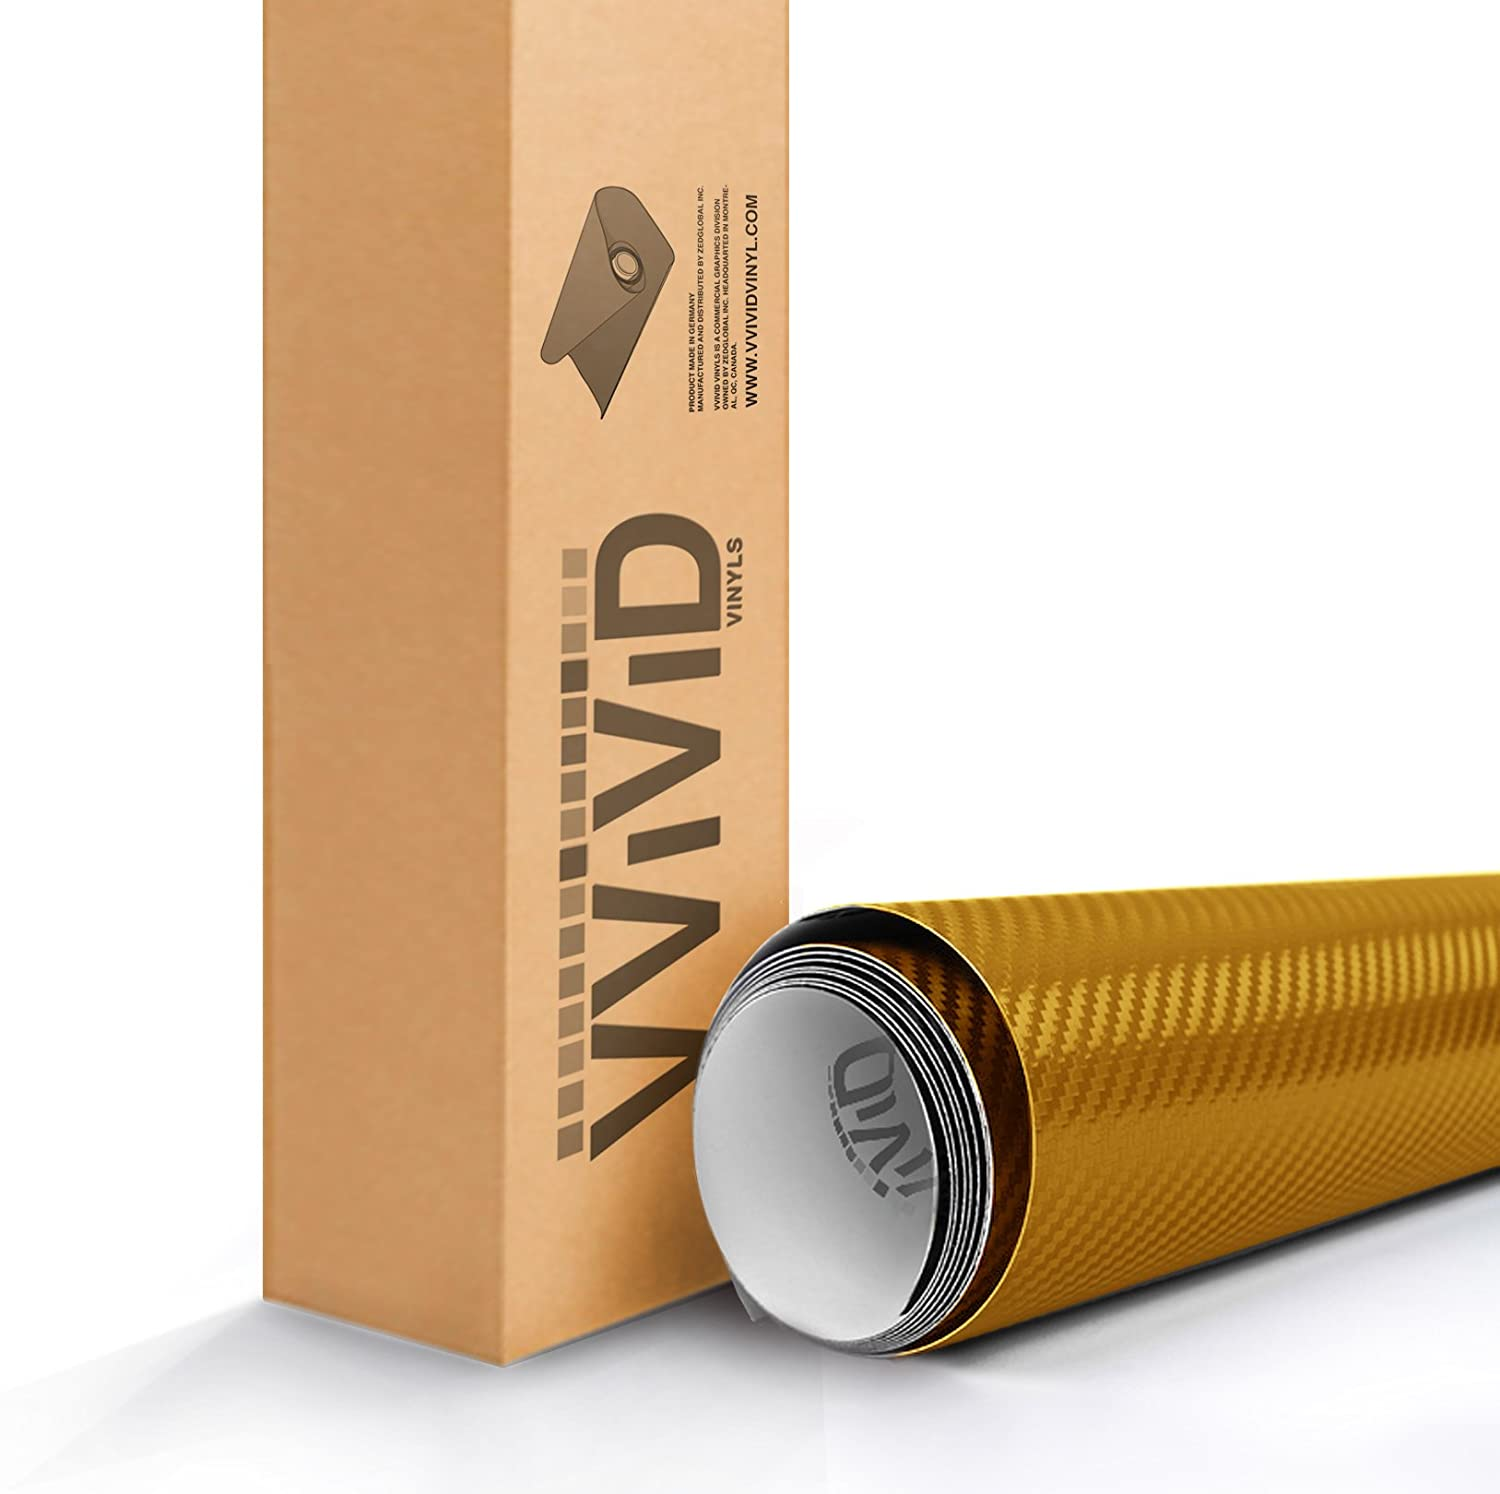 3ft x 5ft VViViD XPO Dry Carbon Fiber Gold Vinyl Wrap Roll with Air Release Technology